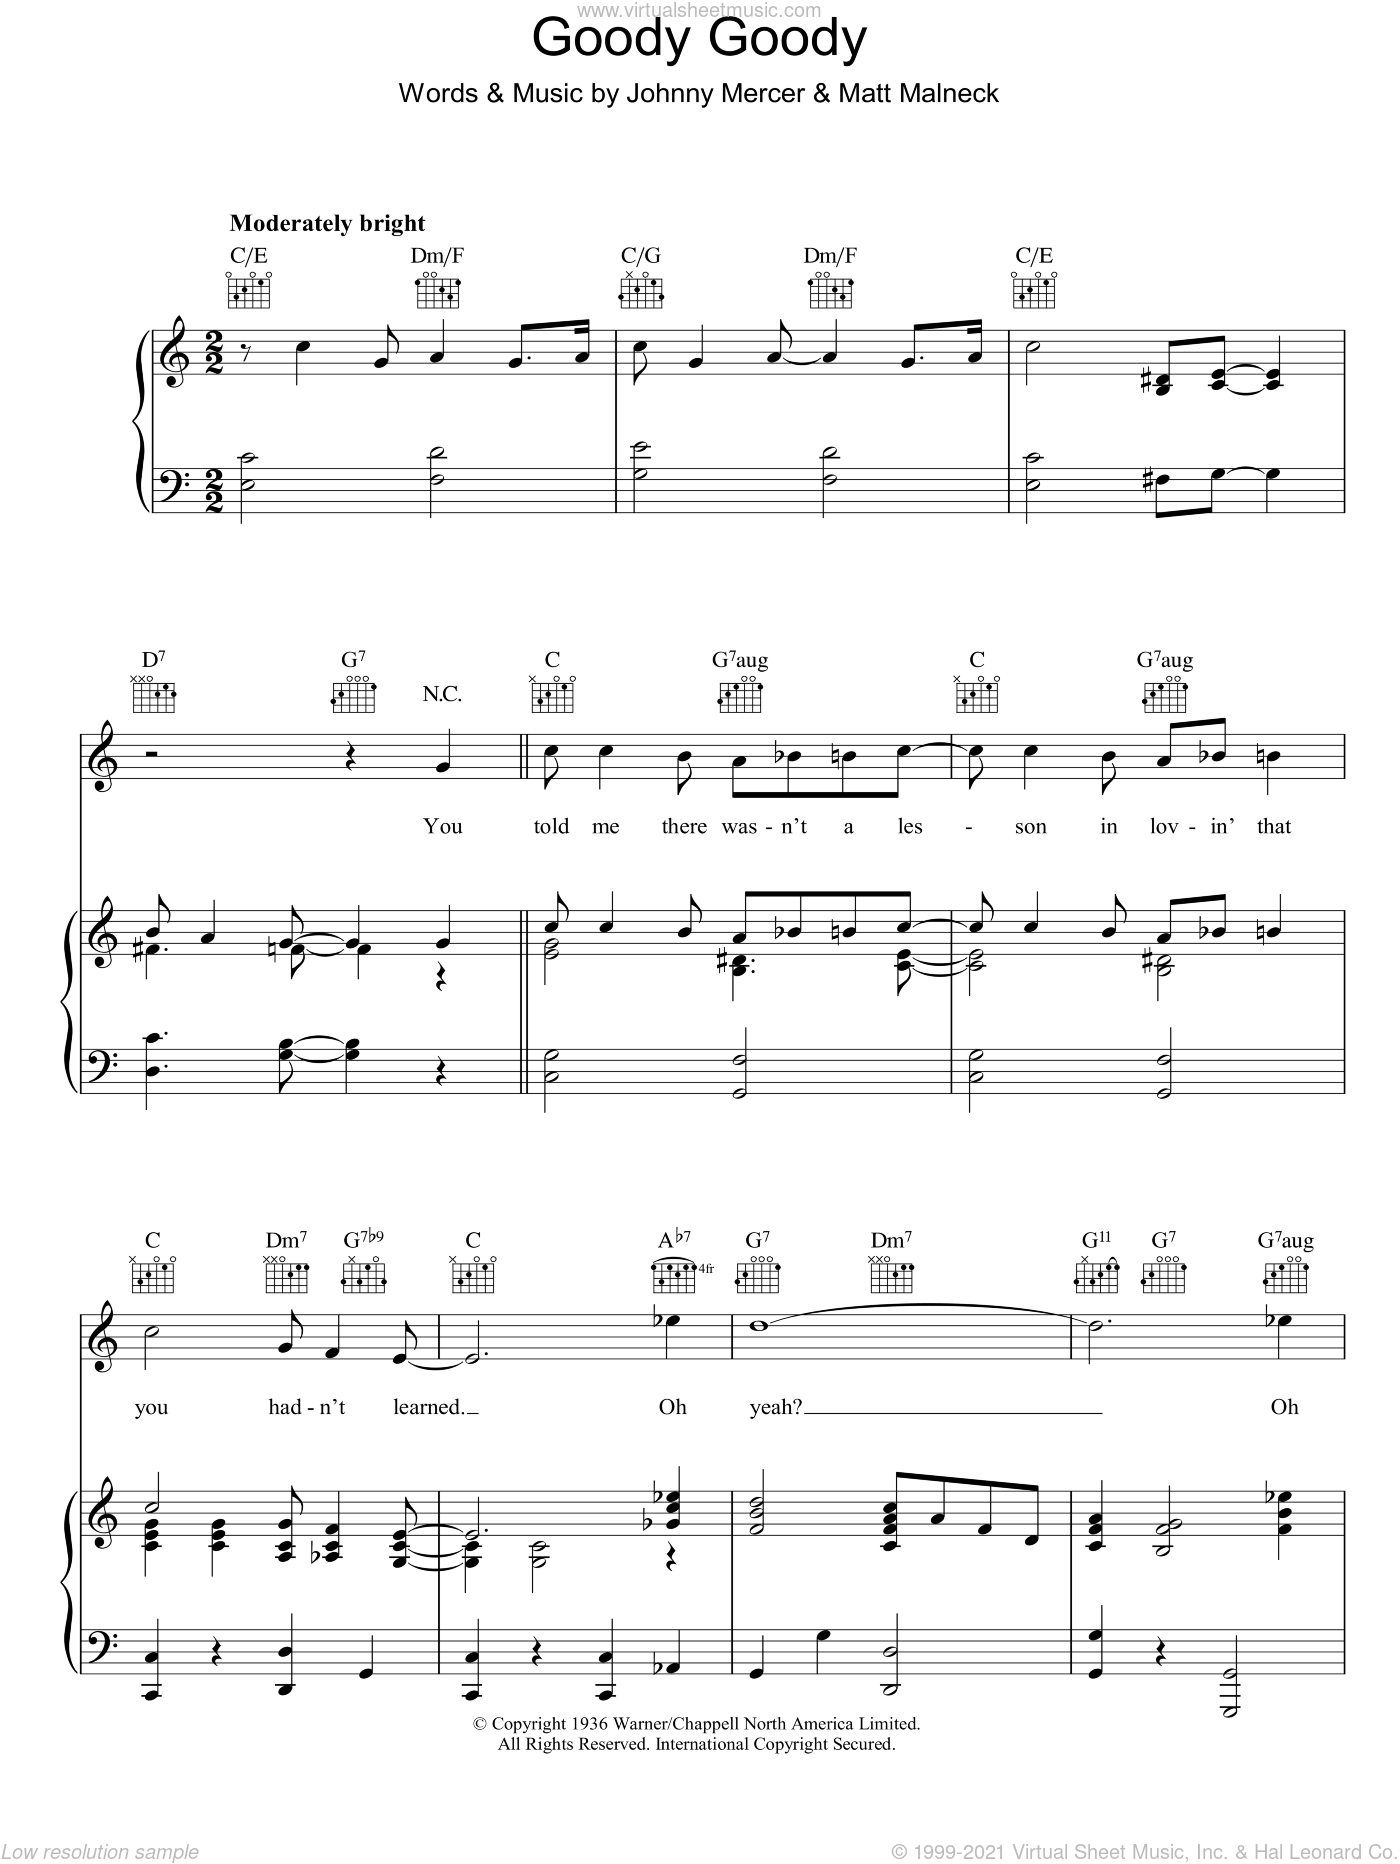 Goody Goody sheet music for voice, piano or guitar by Matt Malneck